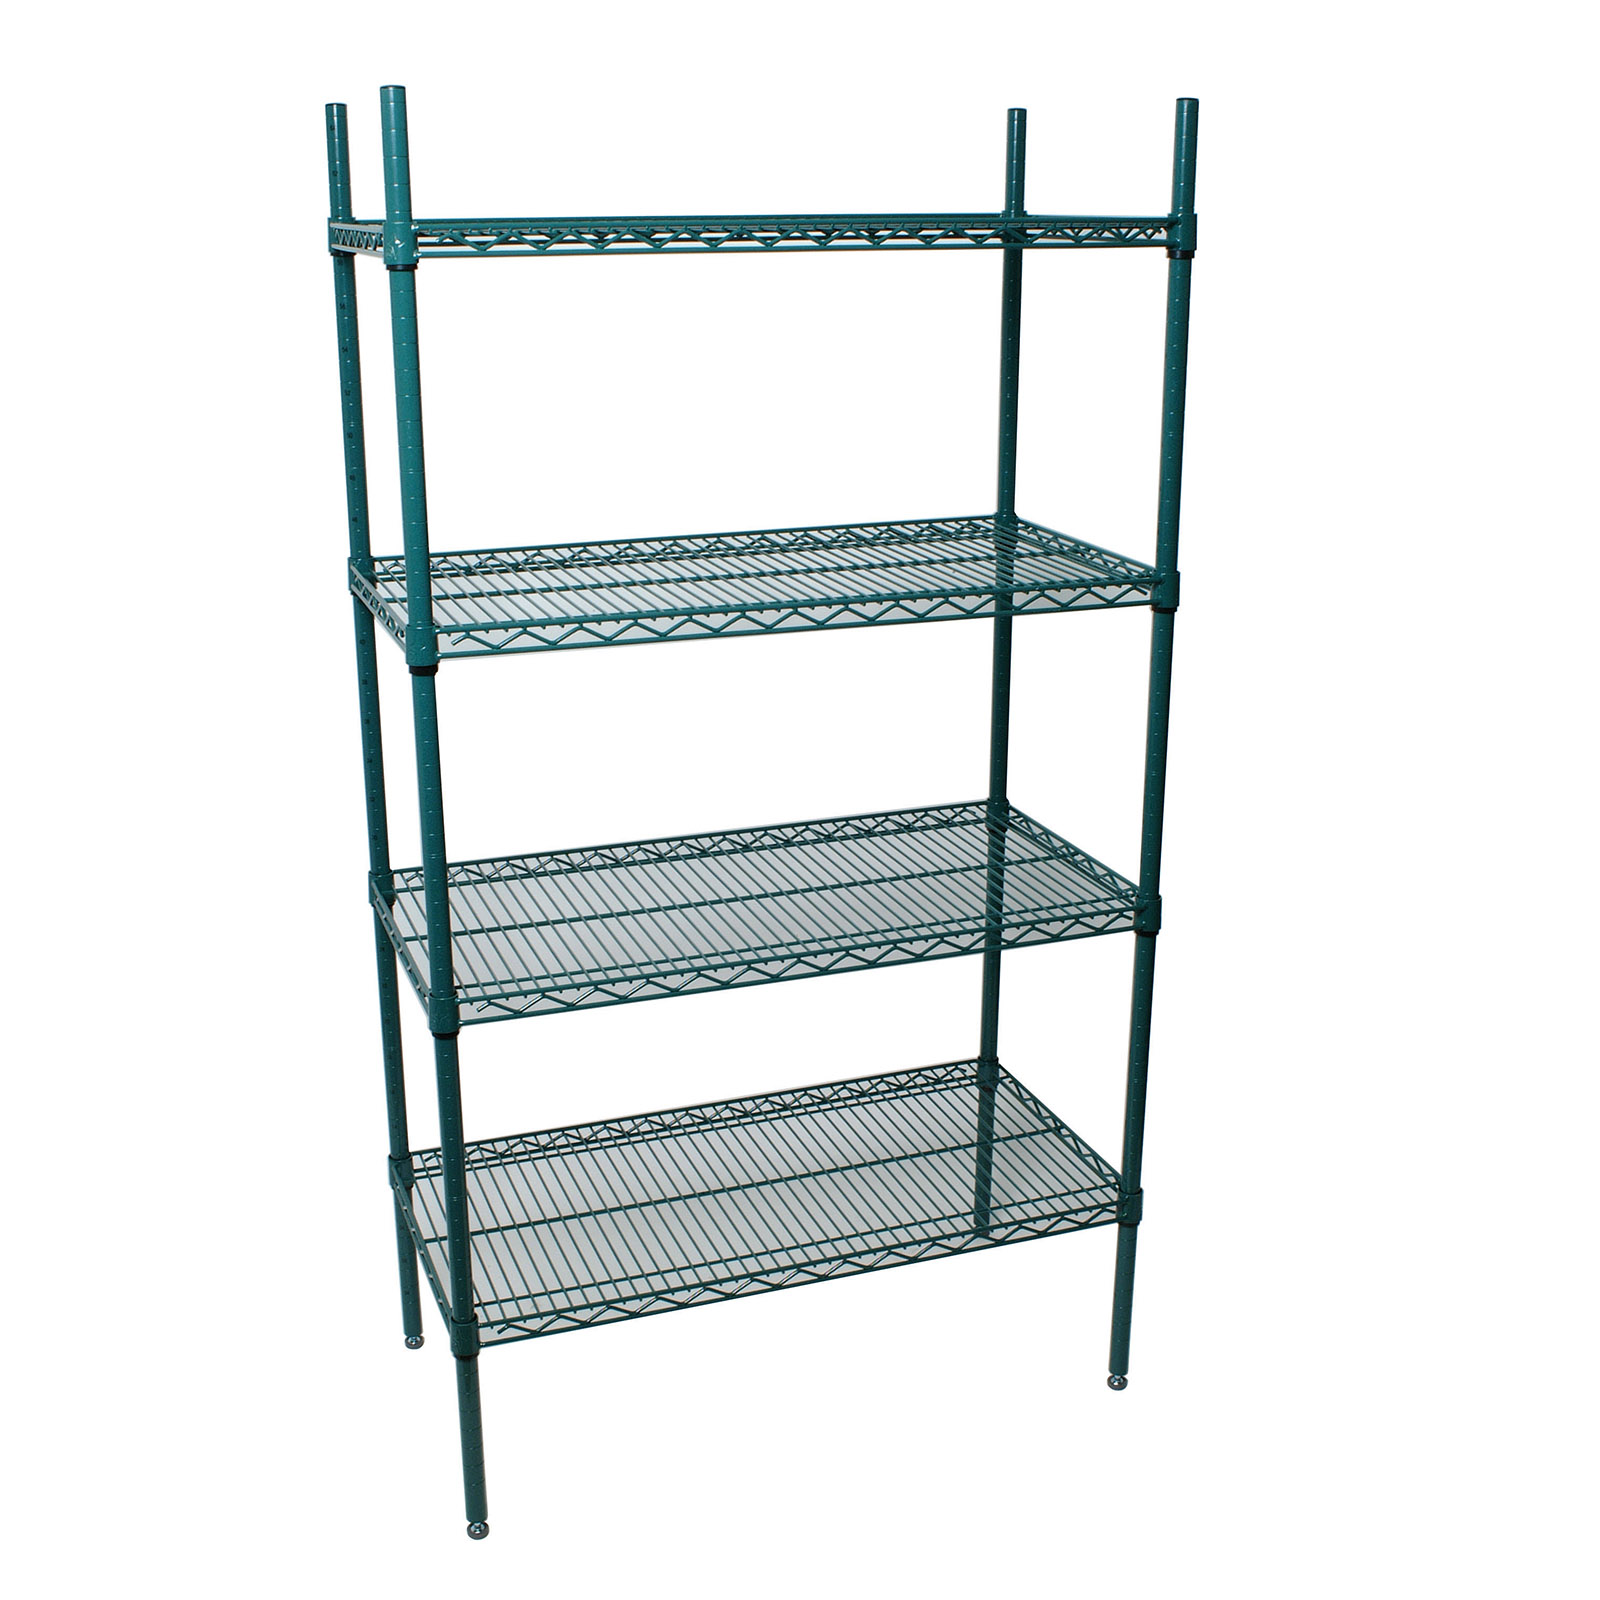 224607 Crown Brands, LLC shelving unit, wire